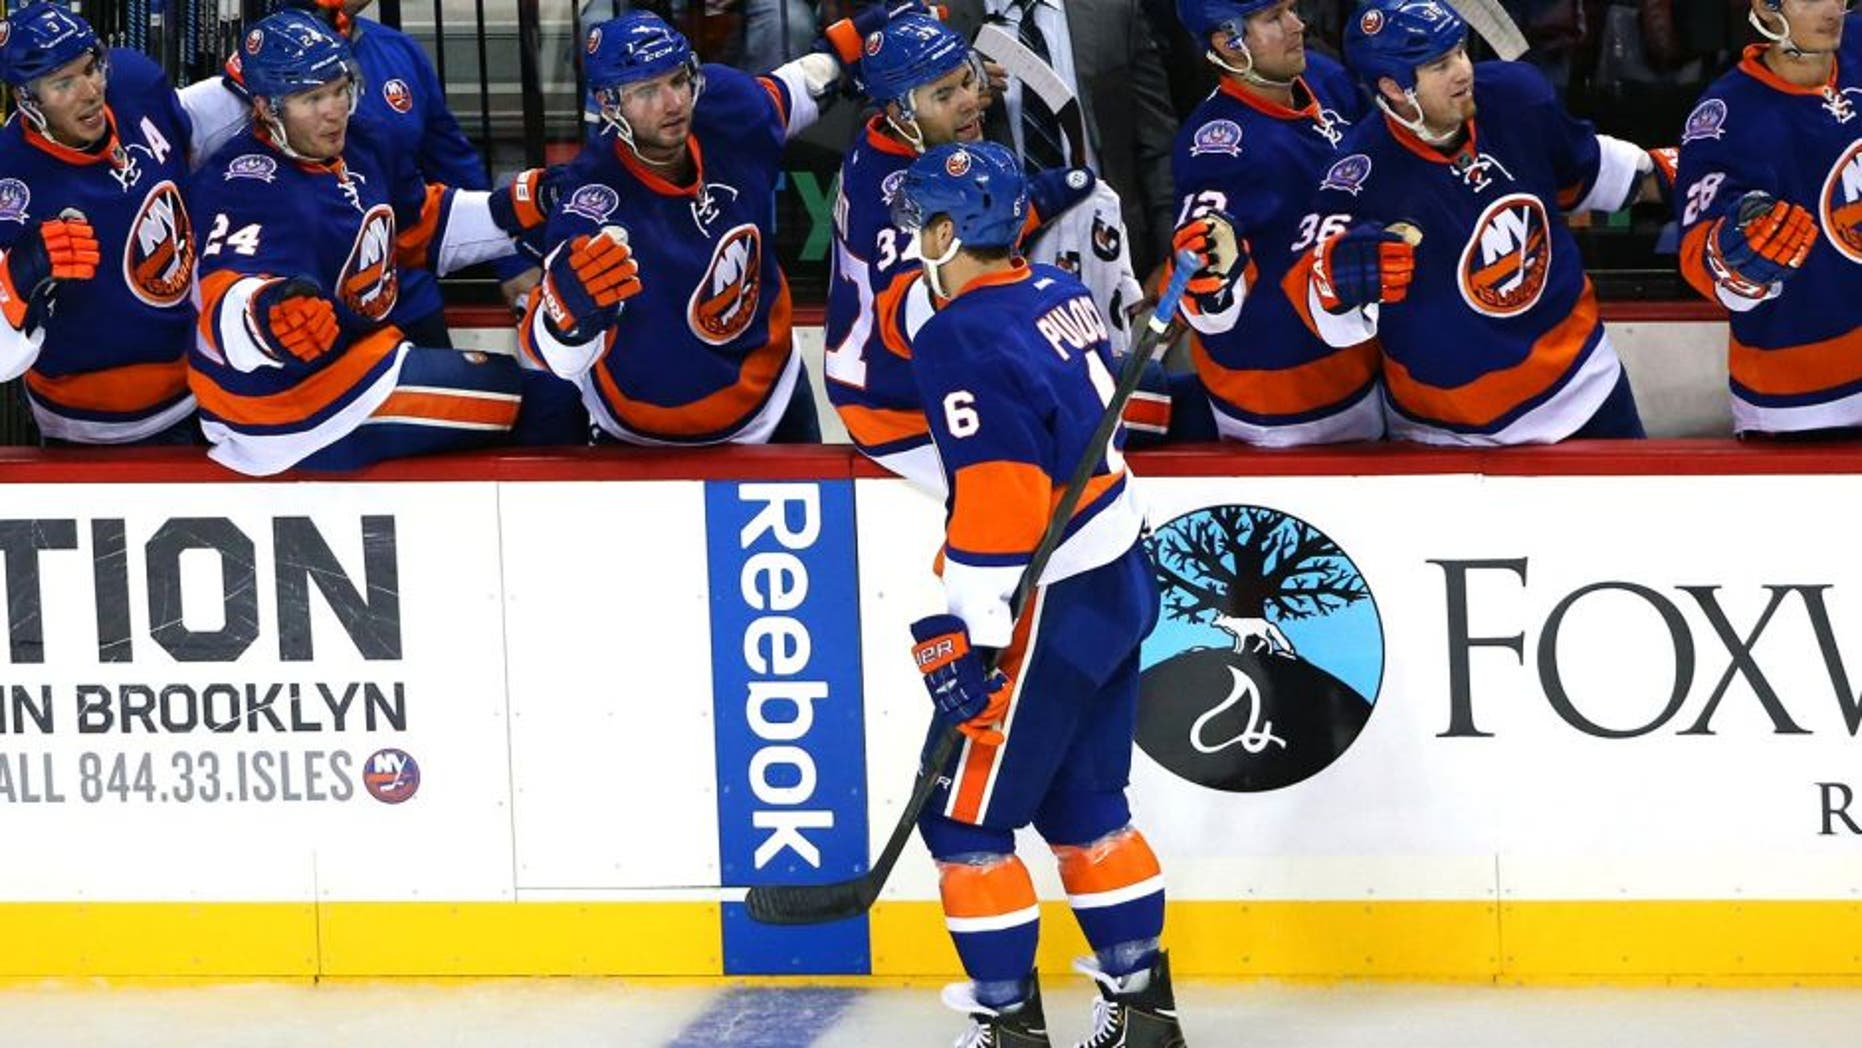 Sep 26, 2014; Brooklyn, NY, USA; New York Islanders defenseman Ryan Pulock (6) high fives the bench after scoring during the first period against the New Jersey Devils at Barclays Center. Mandatory Credit: Anthony Gruppuso-USA TODAY Sports